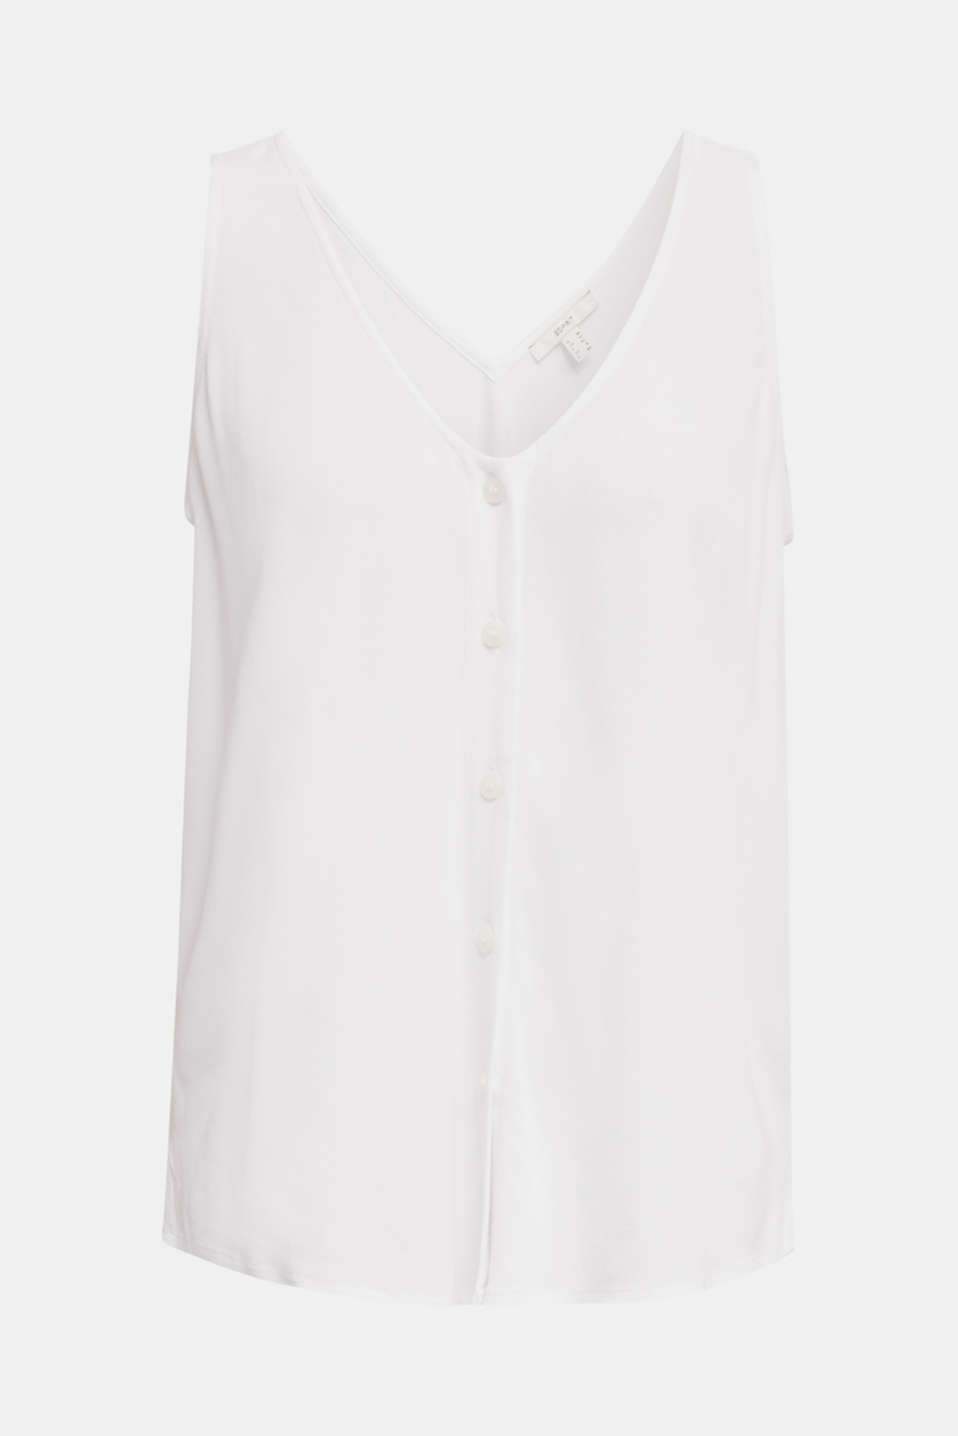 Crêpe blouse top with a button placket, WHITE, detail image number 6